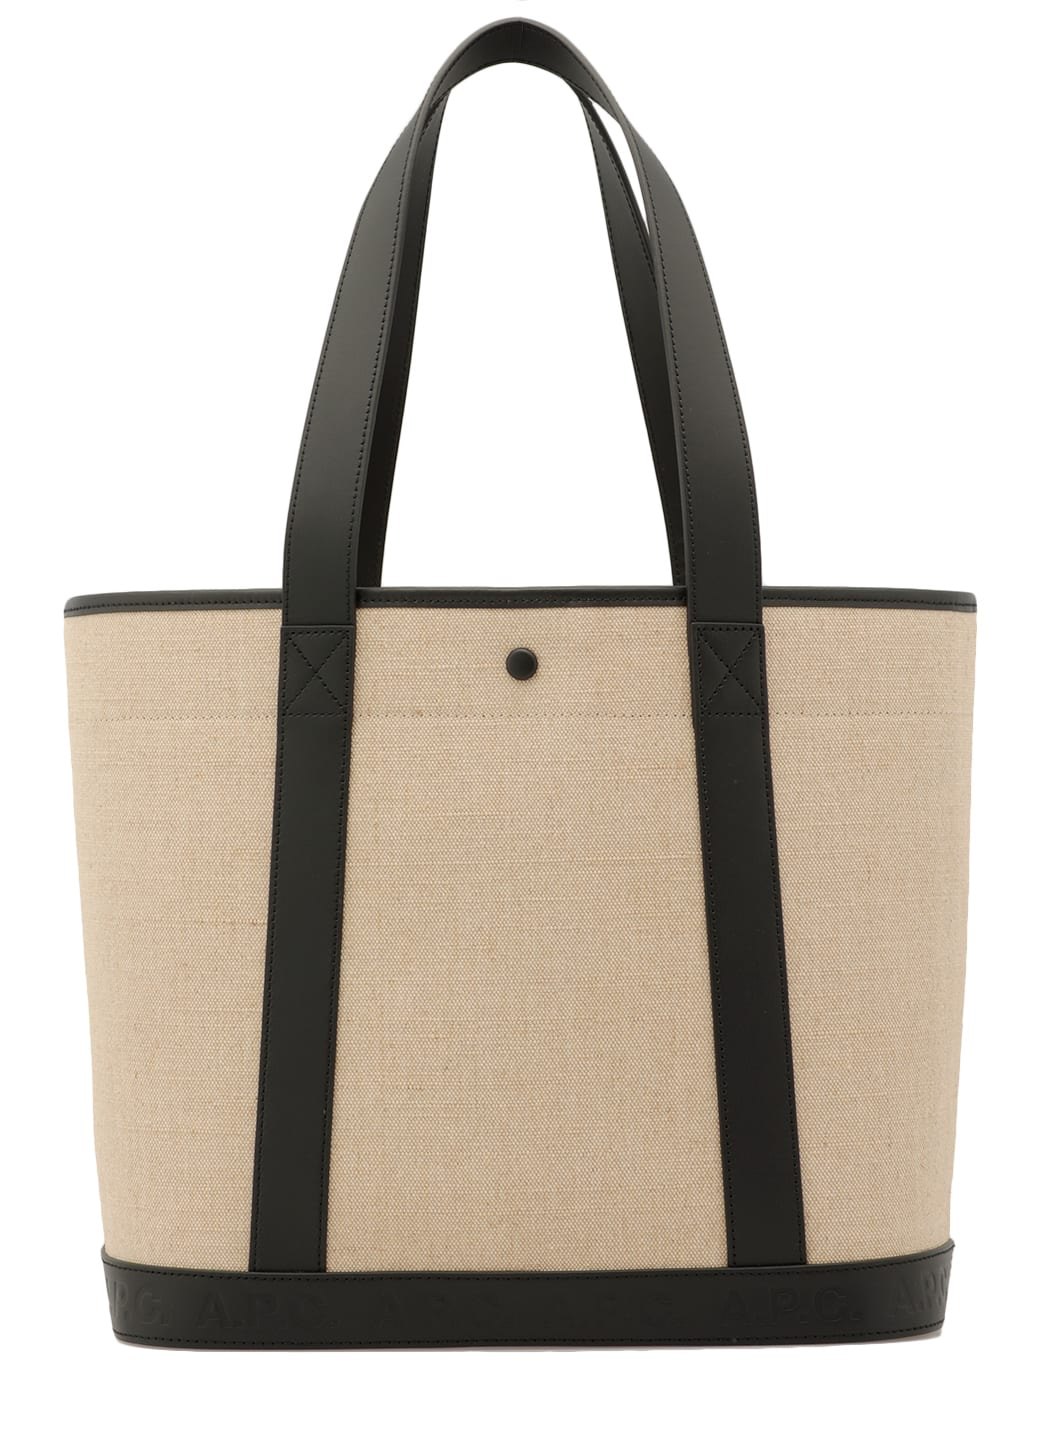 A.p.c. Canvases TOTE BAG